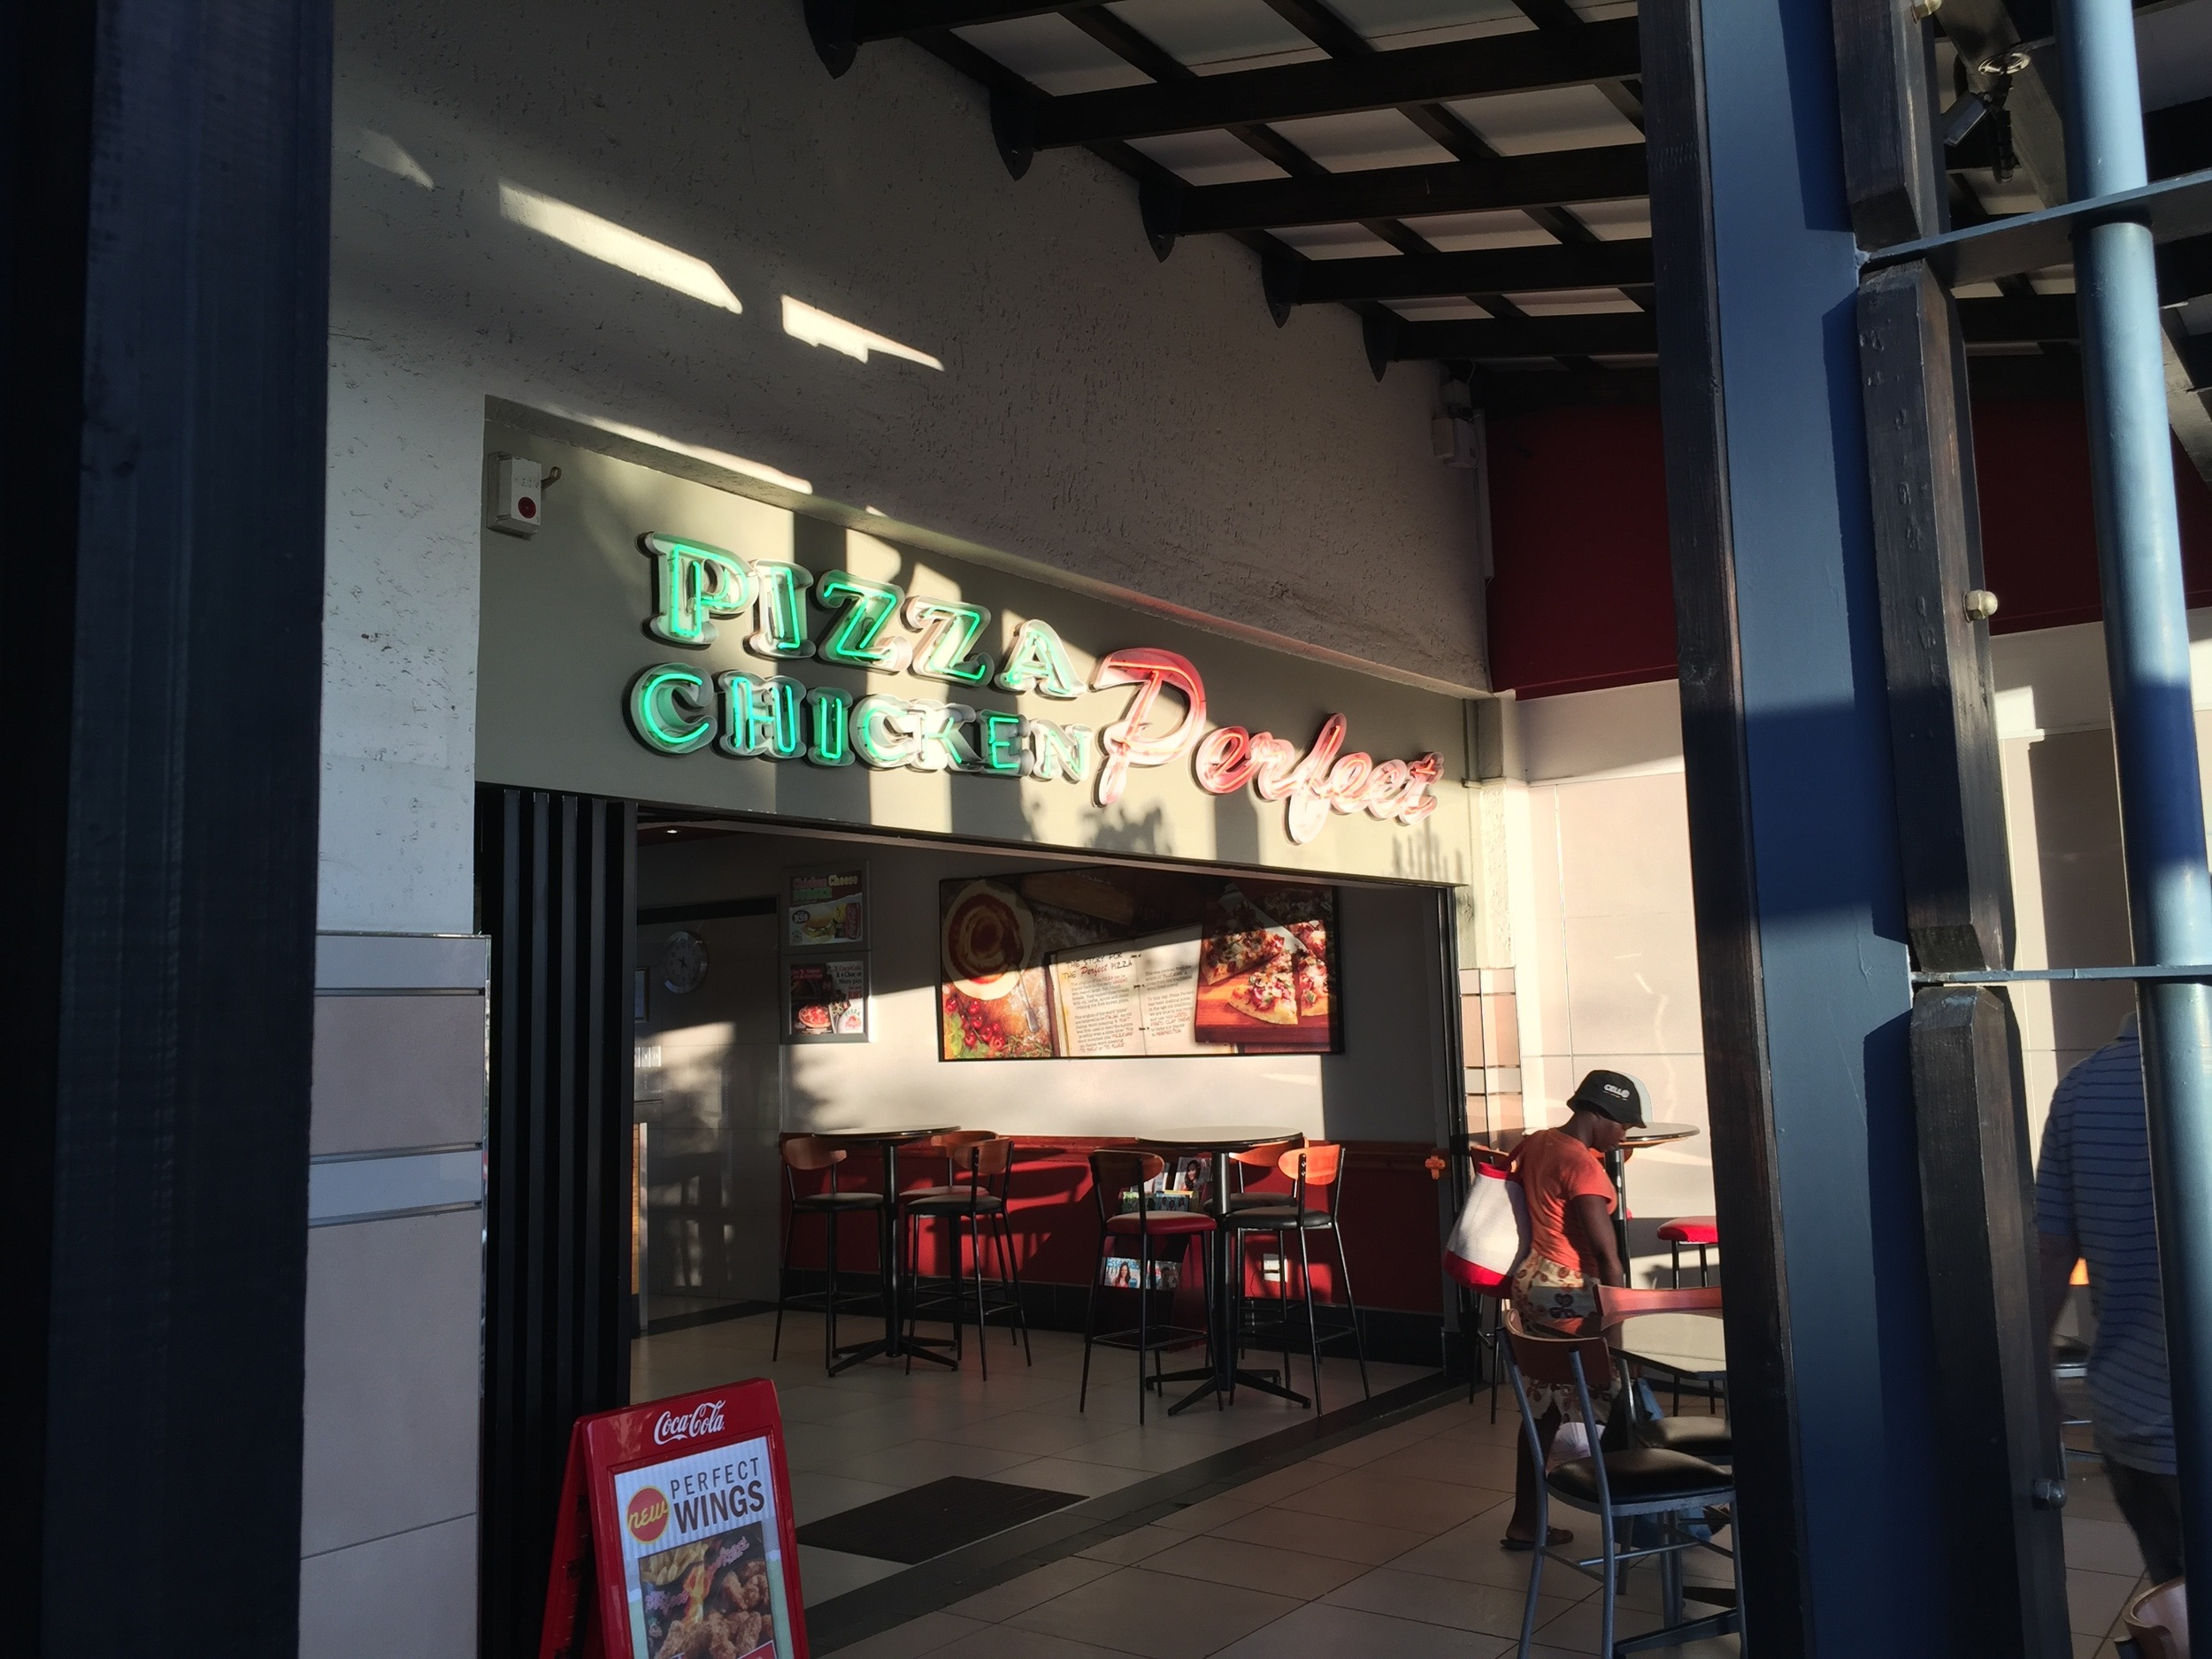 Next to Nando's? A place called Pizza Chicken Perfect. How can you go wrong?!